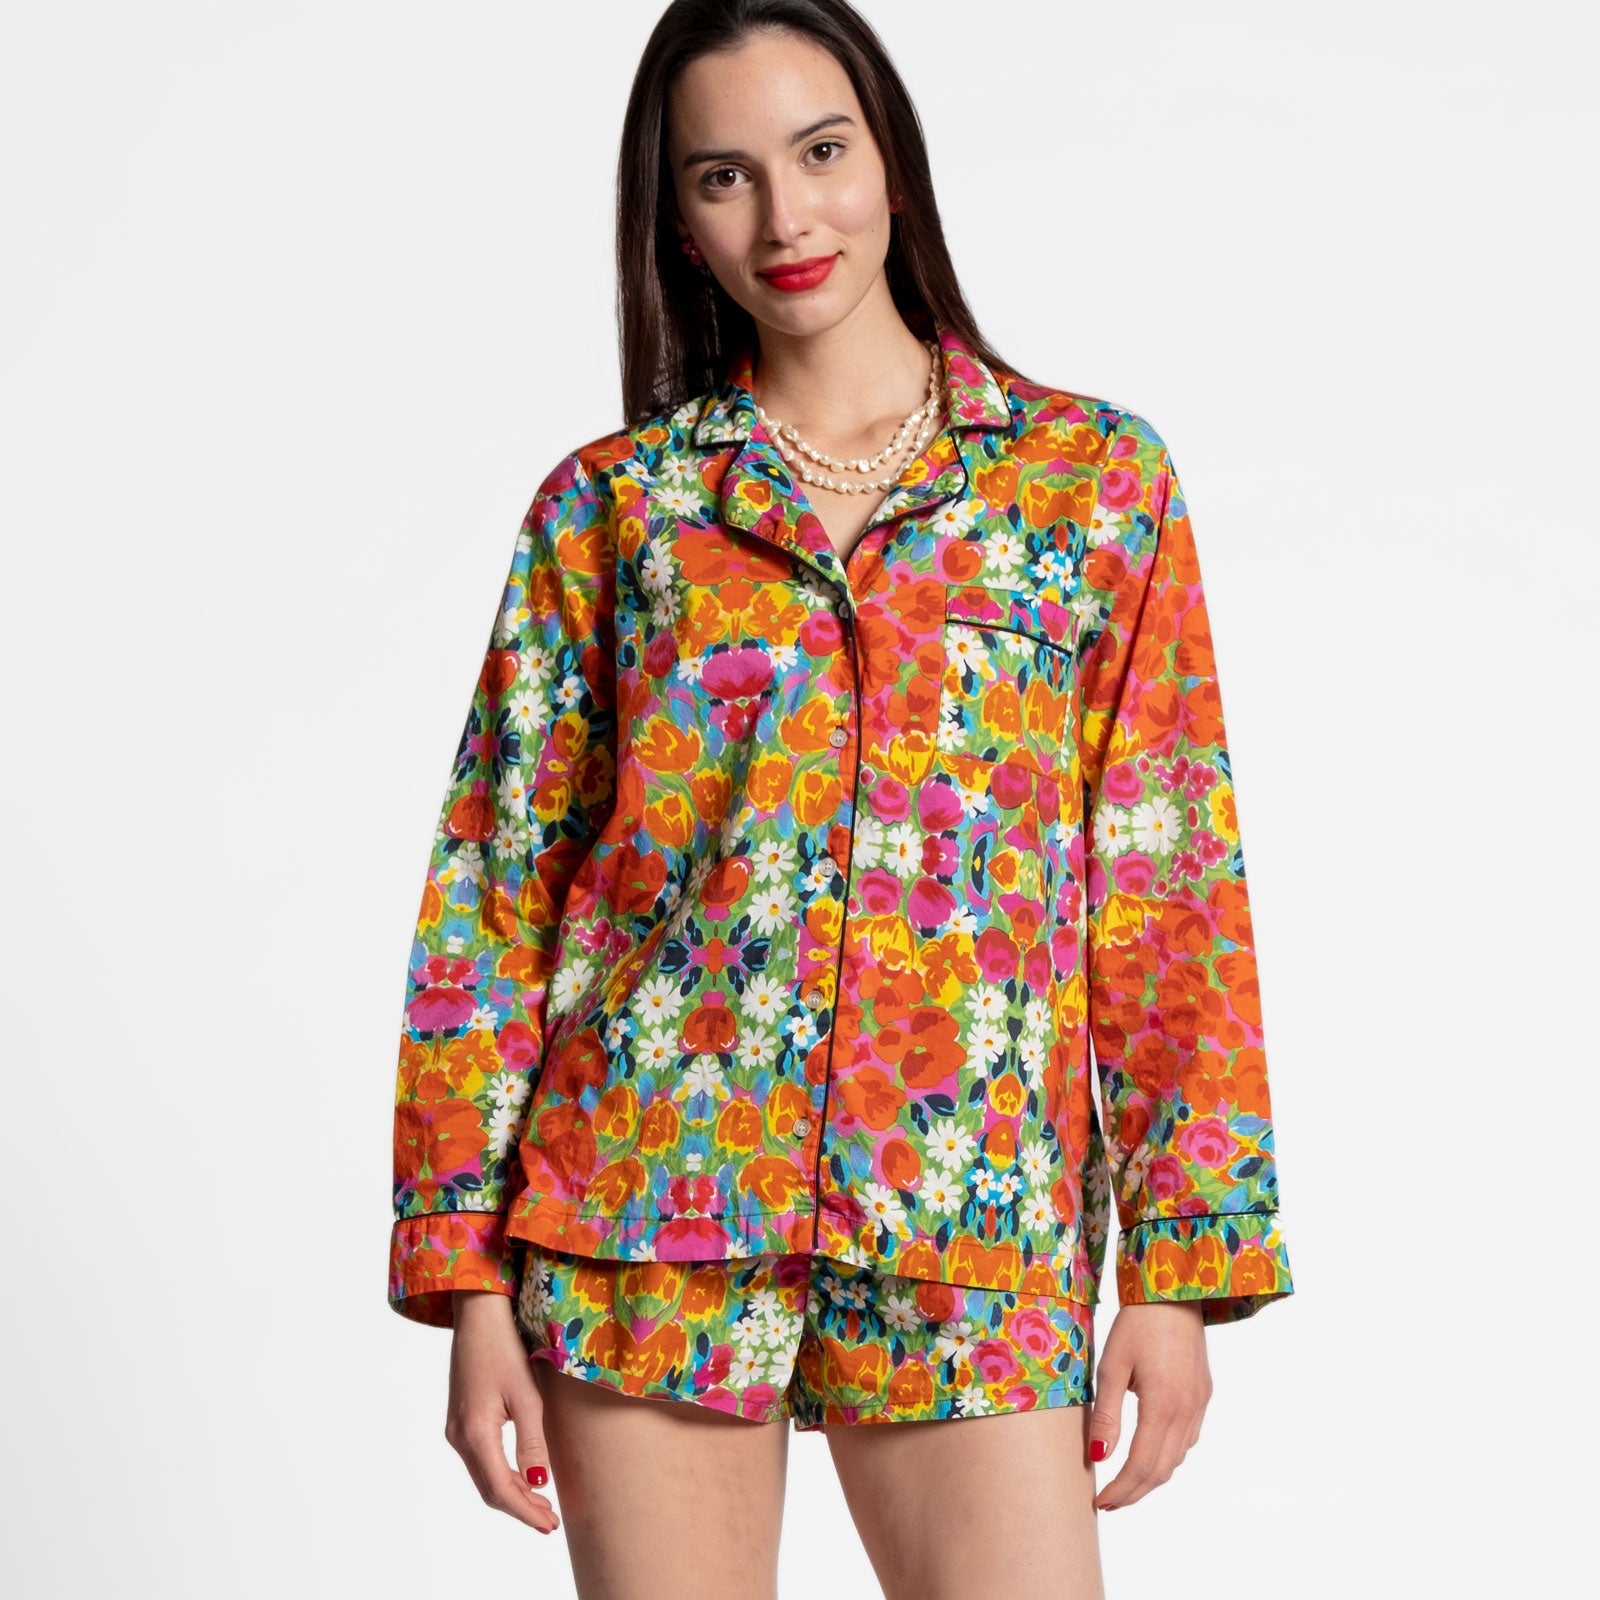 Teddy Pajama Top Bright Floral